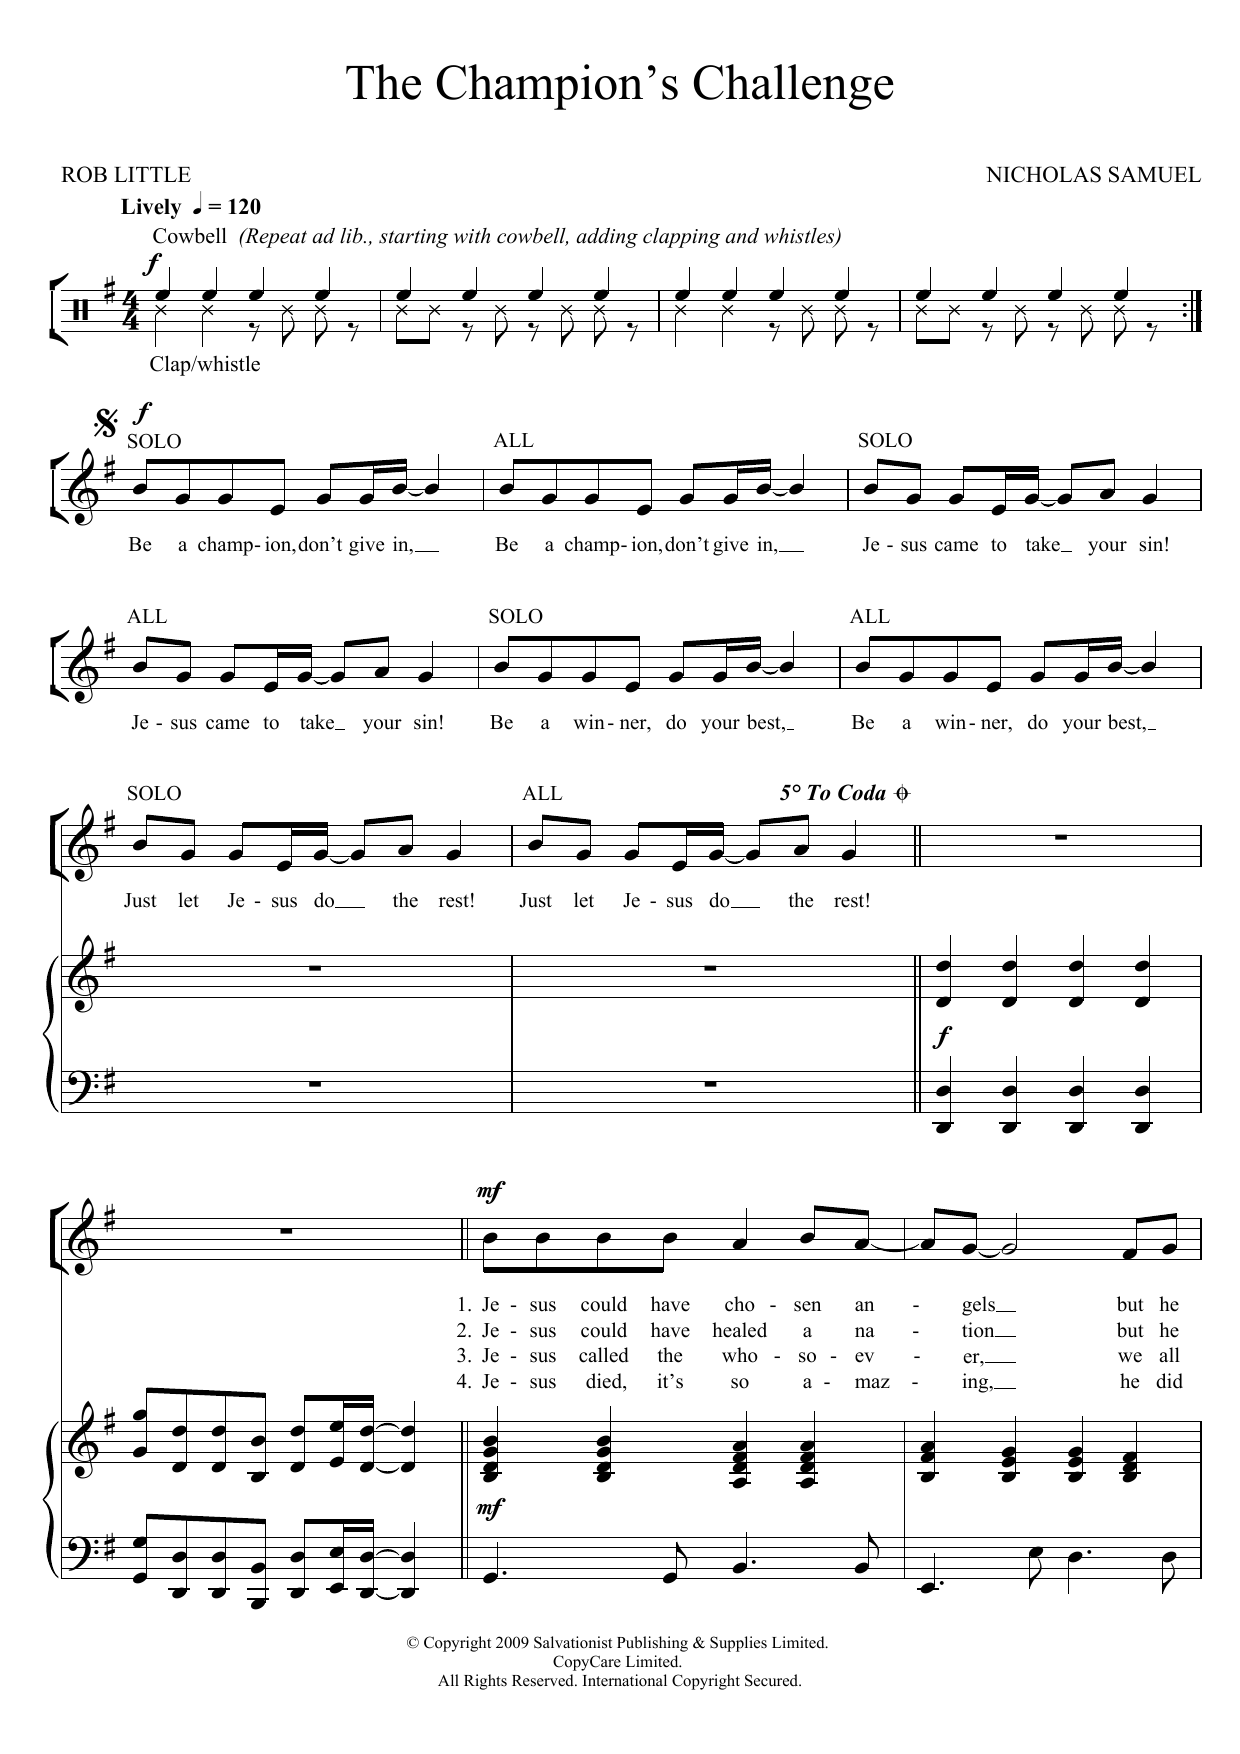 The Champion's Challenge Sheet Music